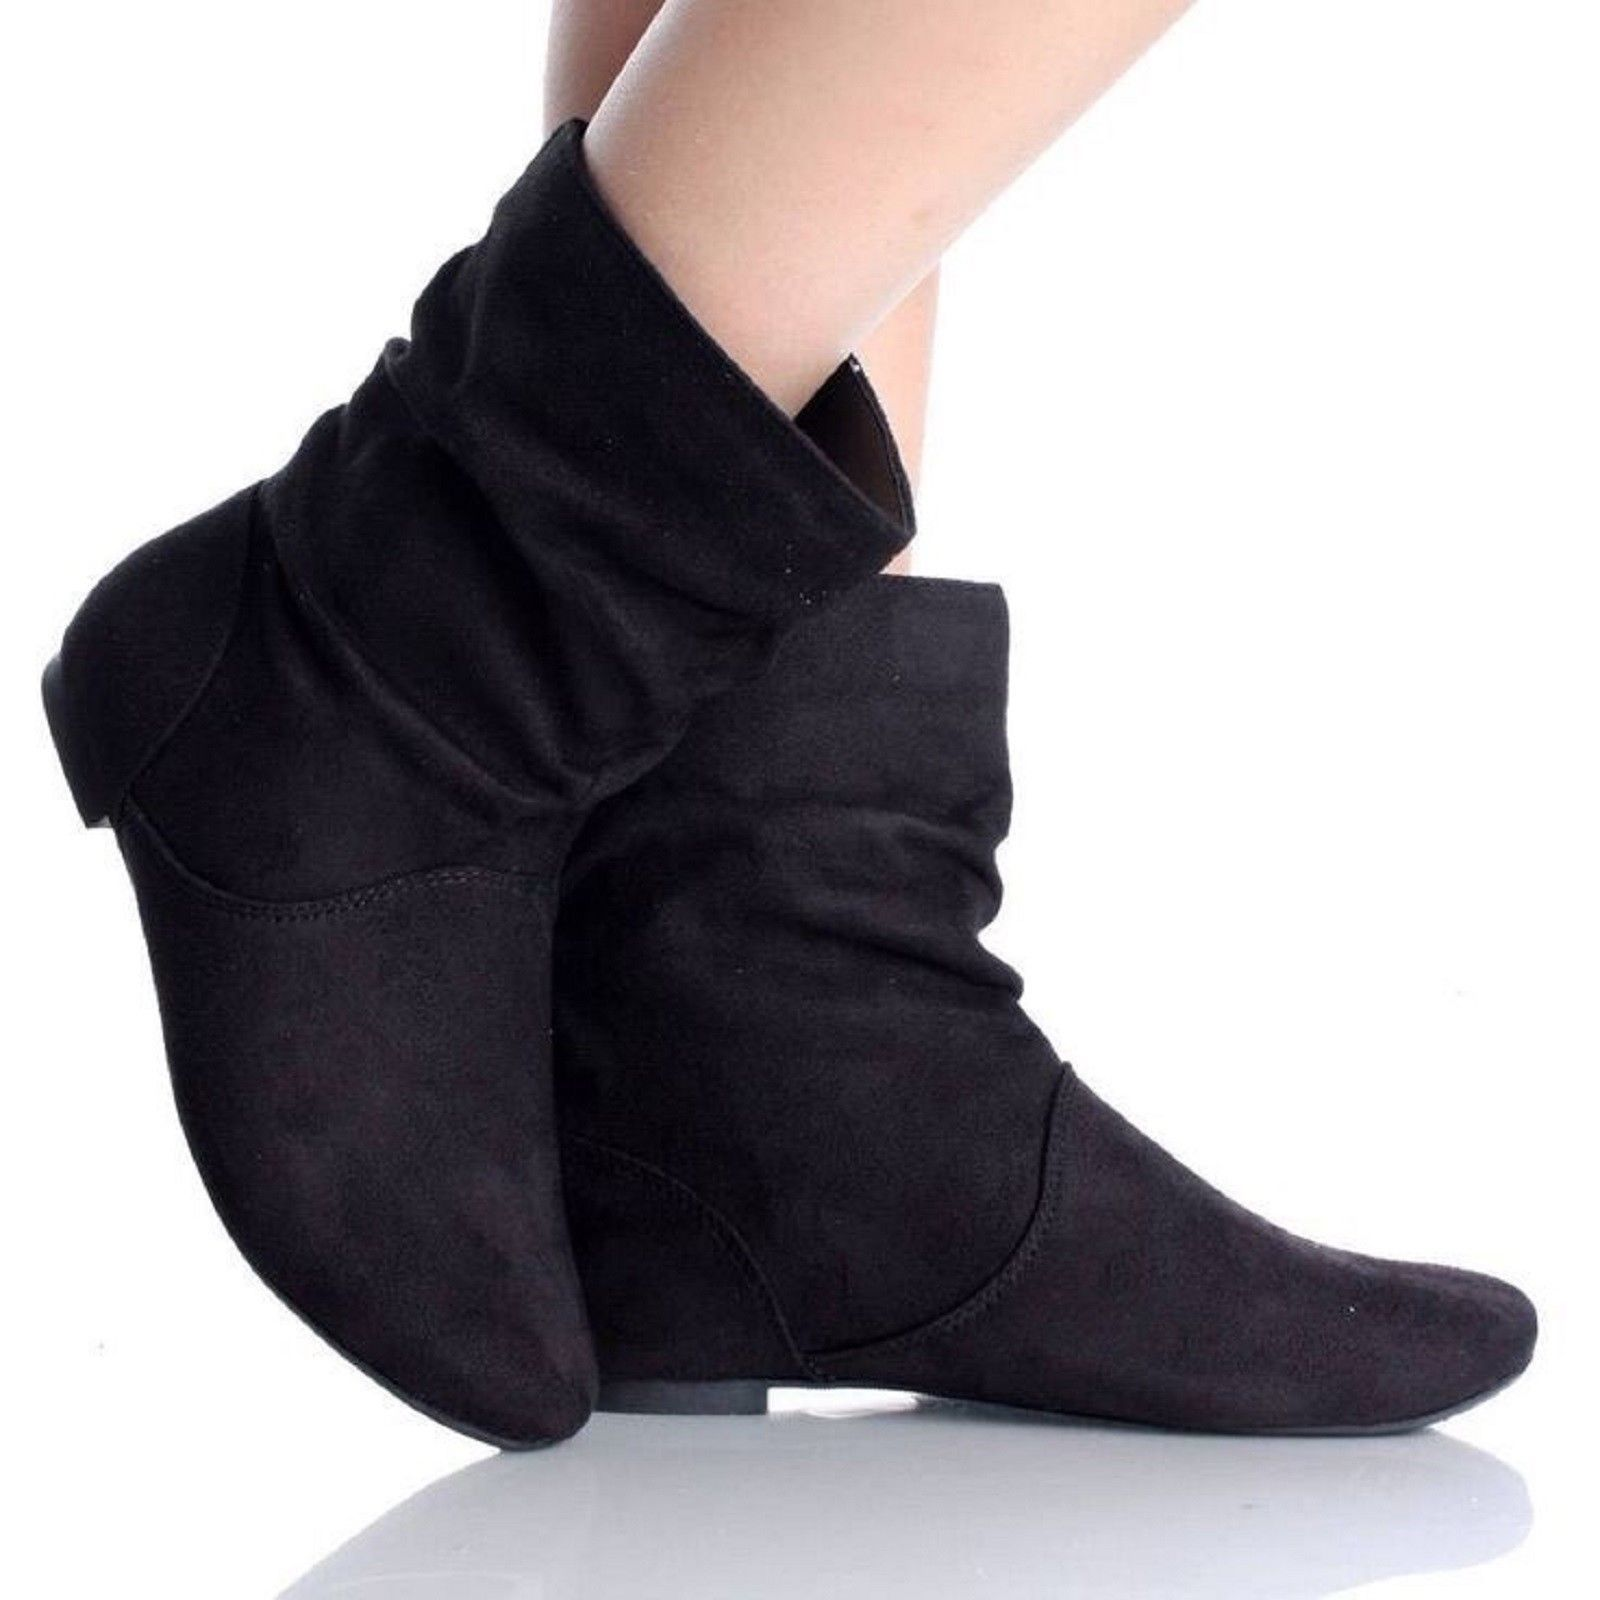 professional sale classic fit the cheapest Womens ladies faux suede fashion pixie ankle boots flats ...